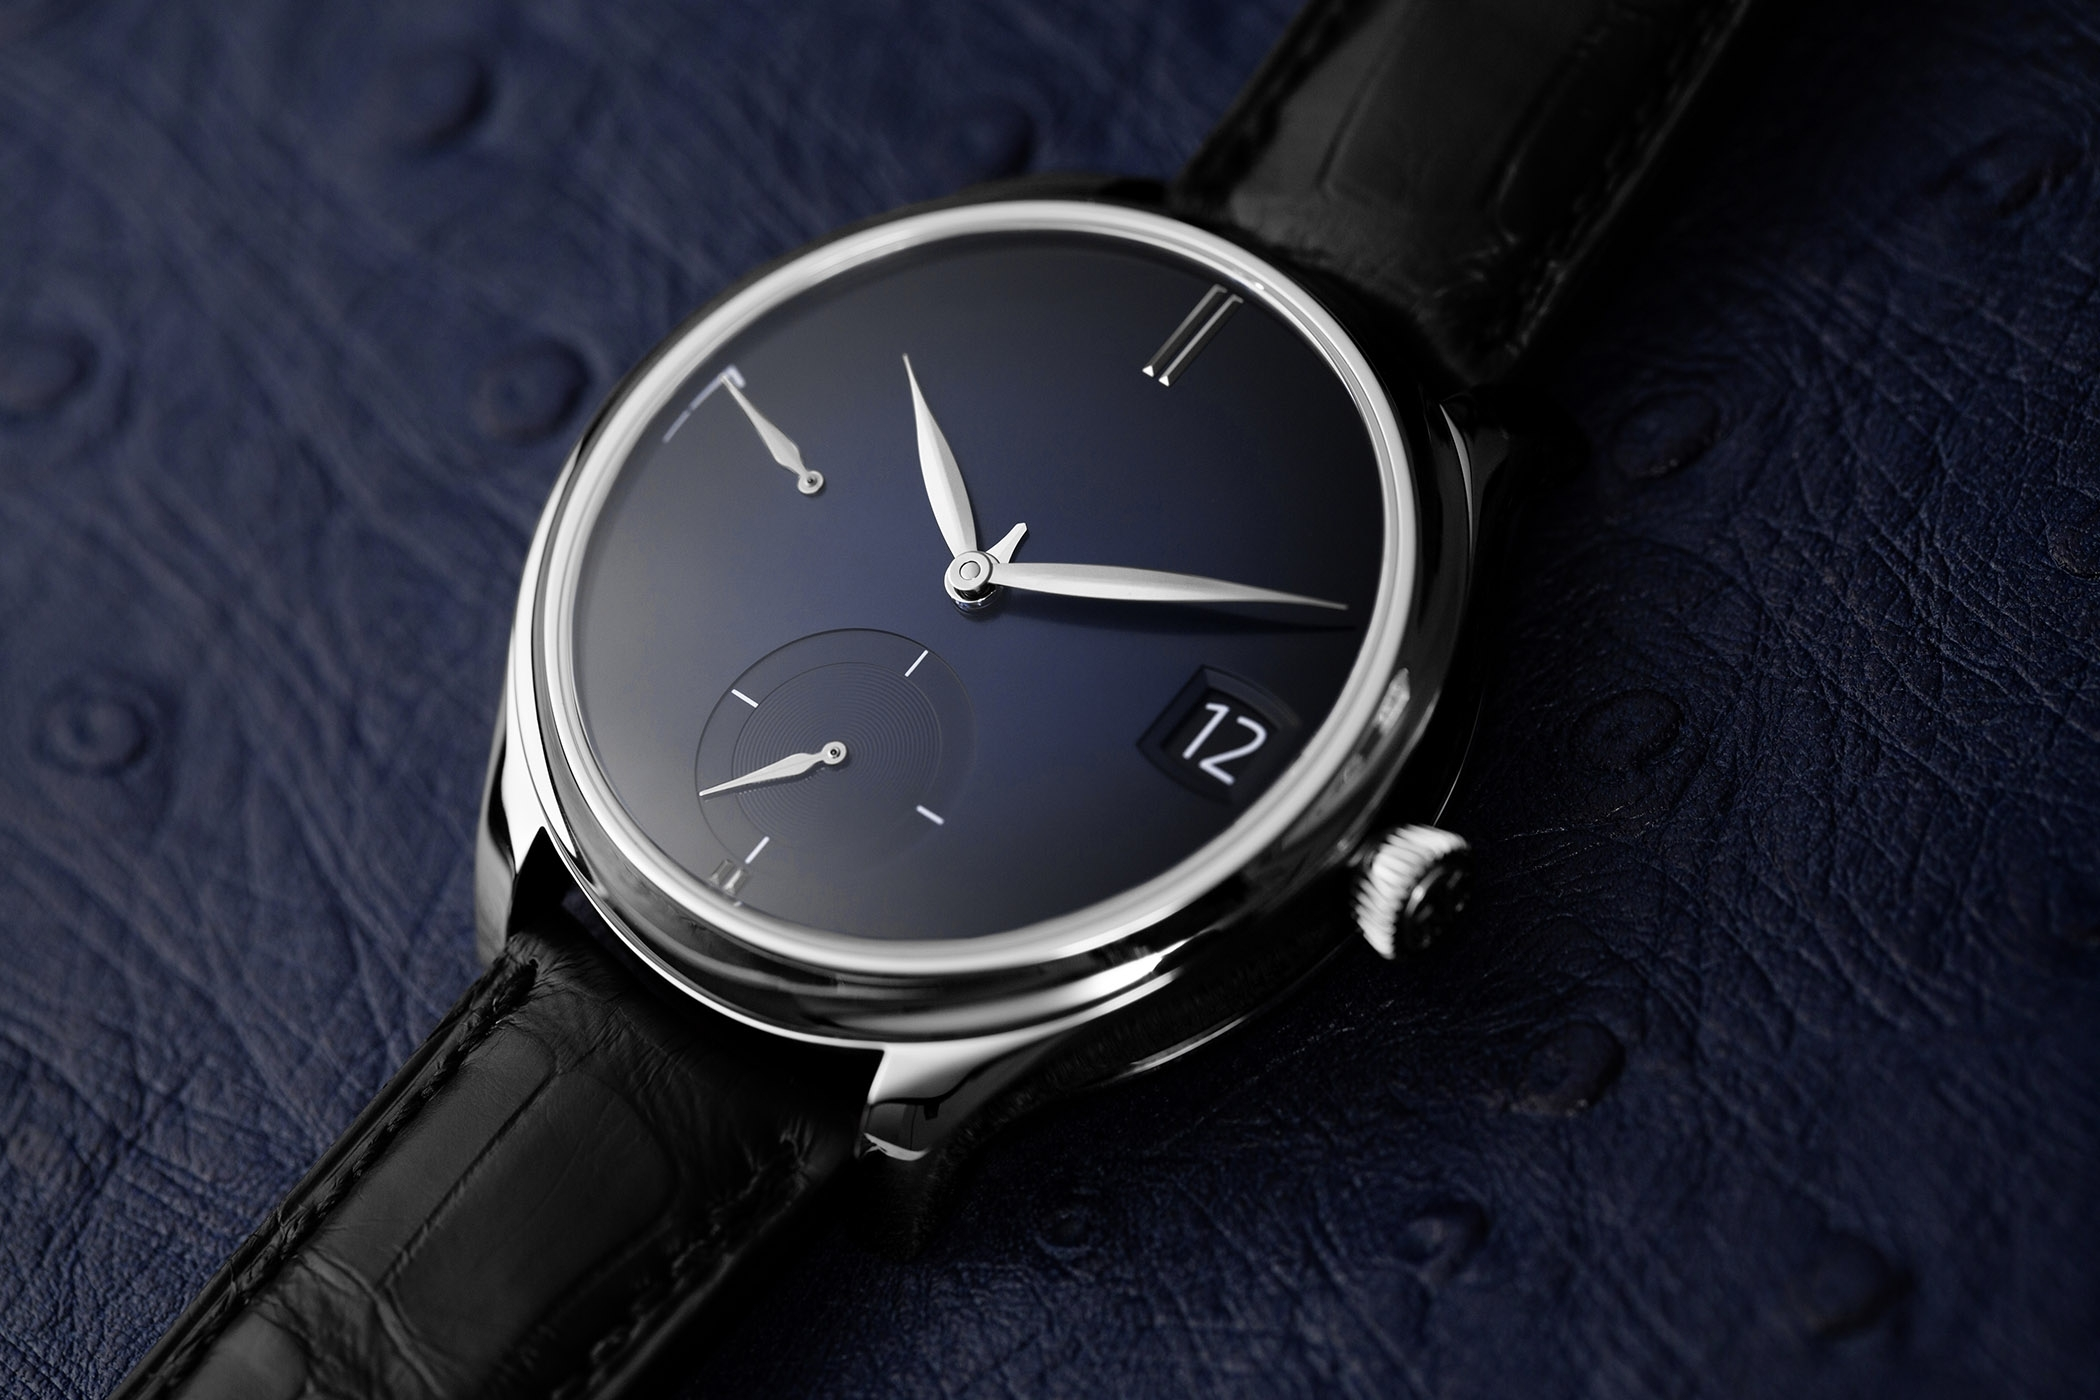 Introducing The H. Moser & Cie Endeavour Perpetual Calendar